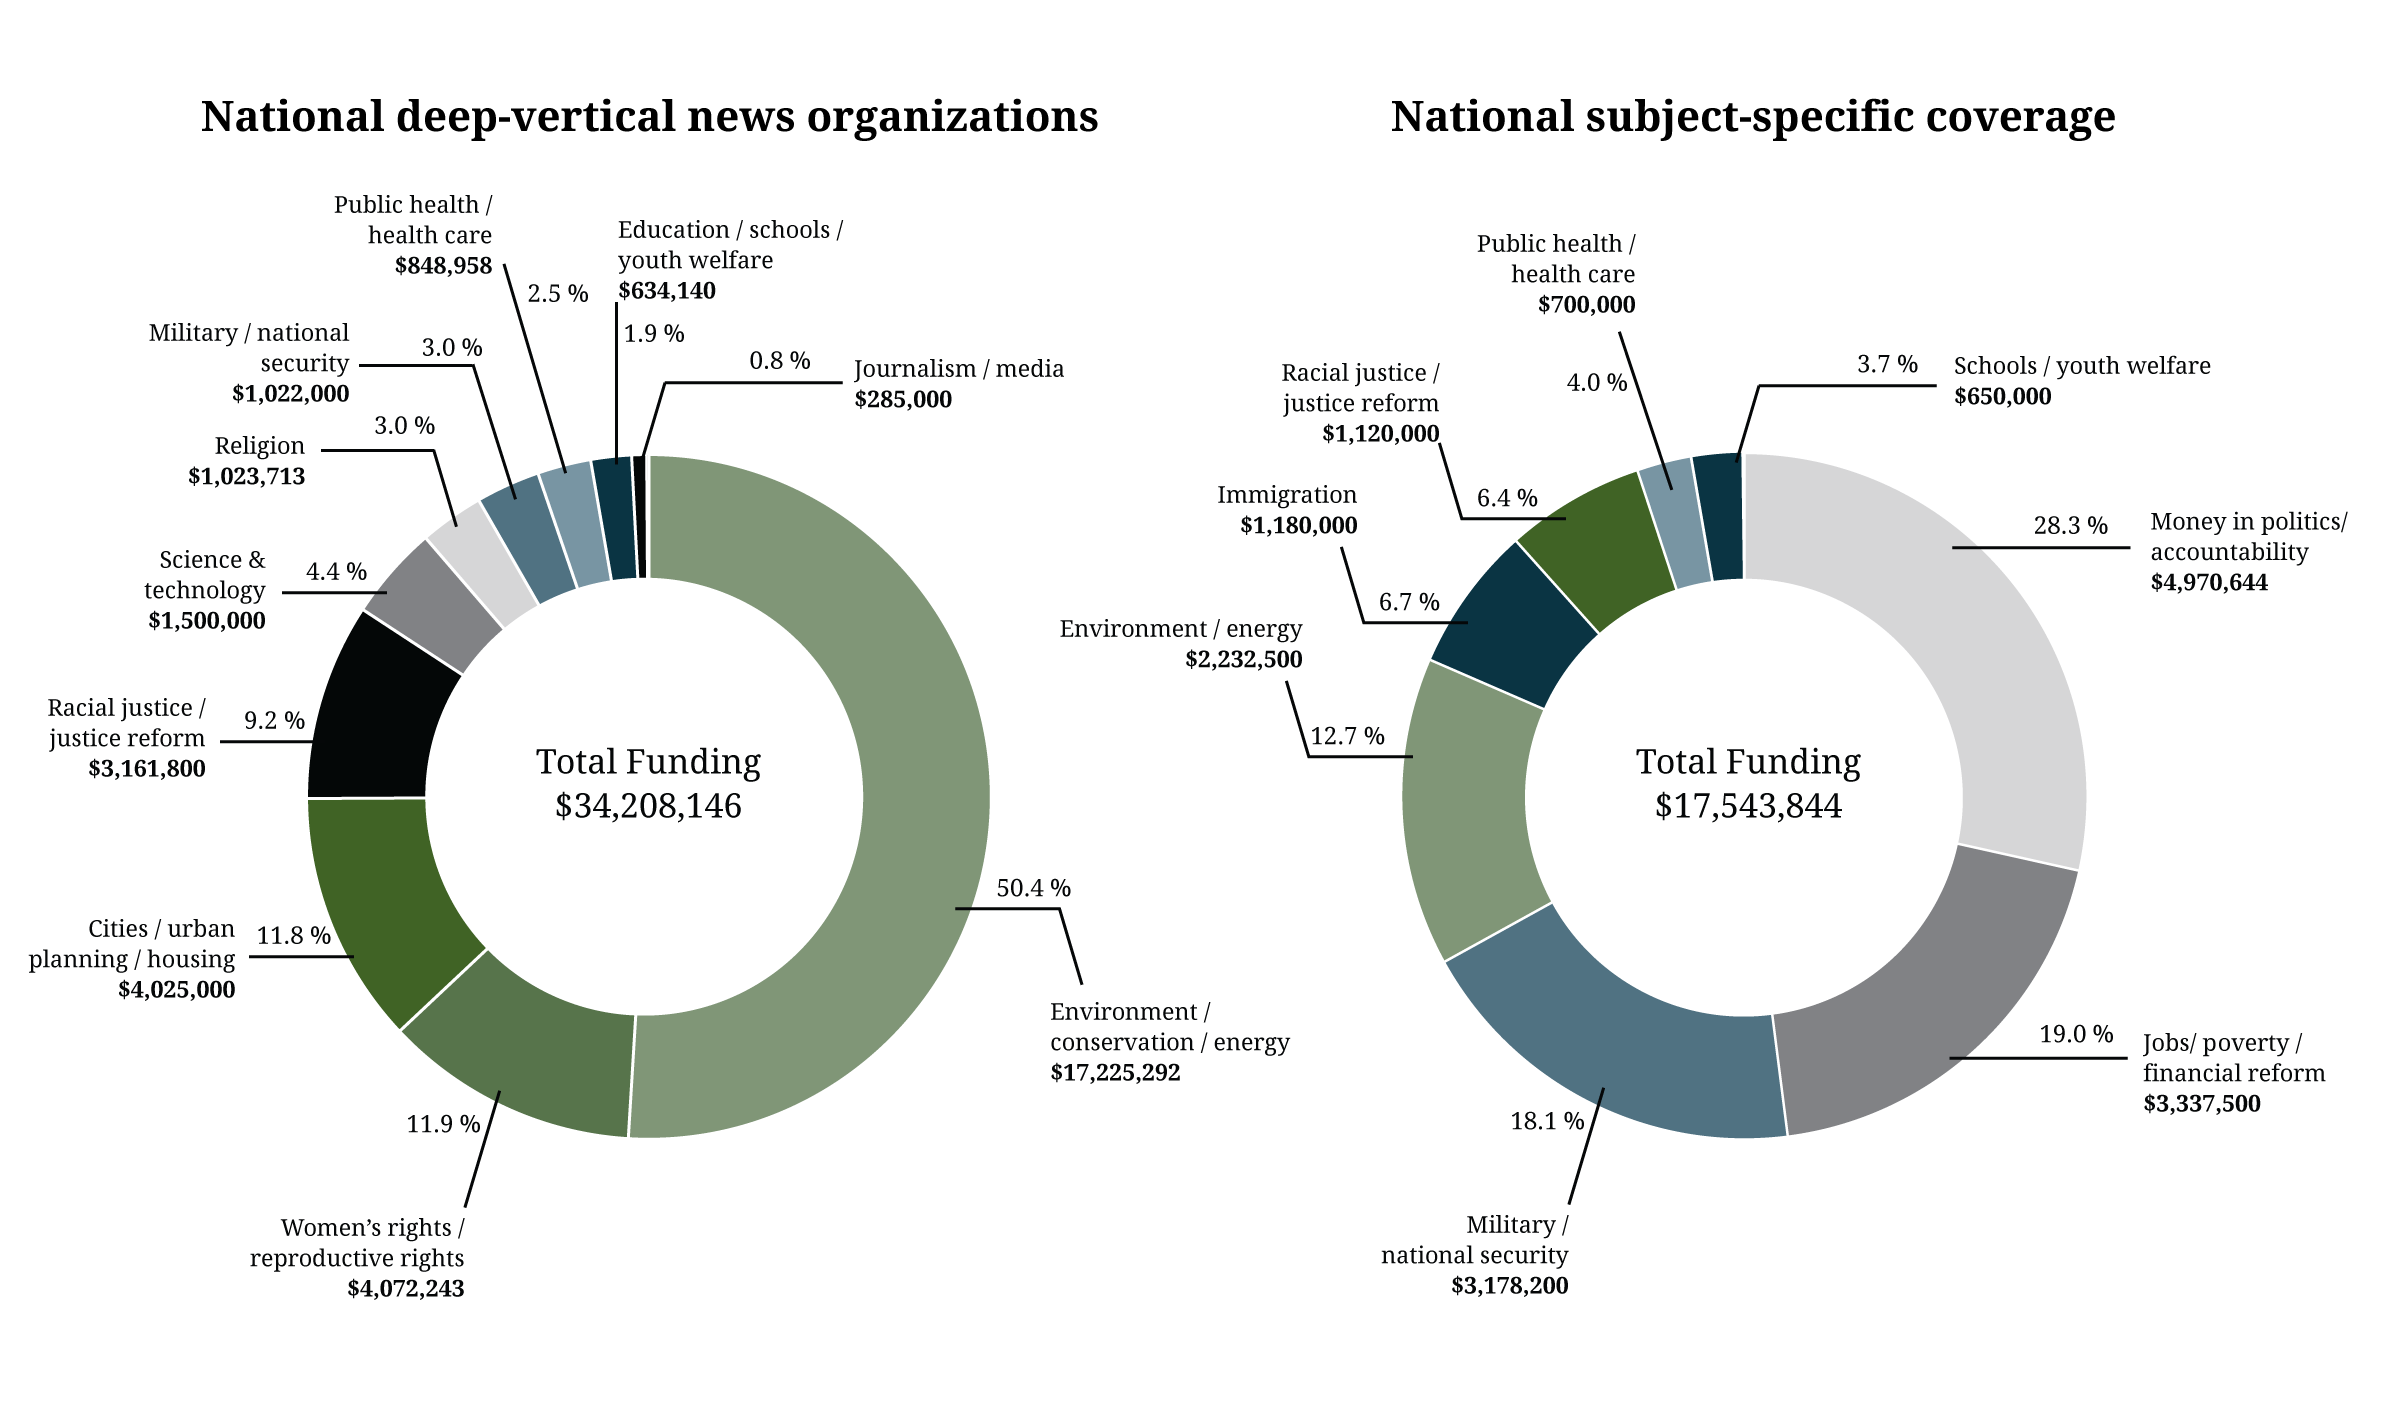 044fdeda In terms of funding to cover specific subjects or beats at national  nonprofits, slightly more than a quarter of the $17.5 million supported  coverage of ...